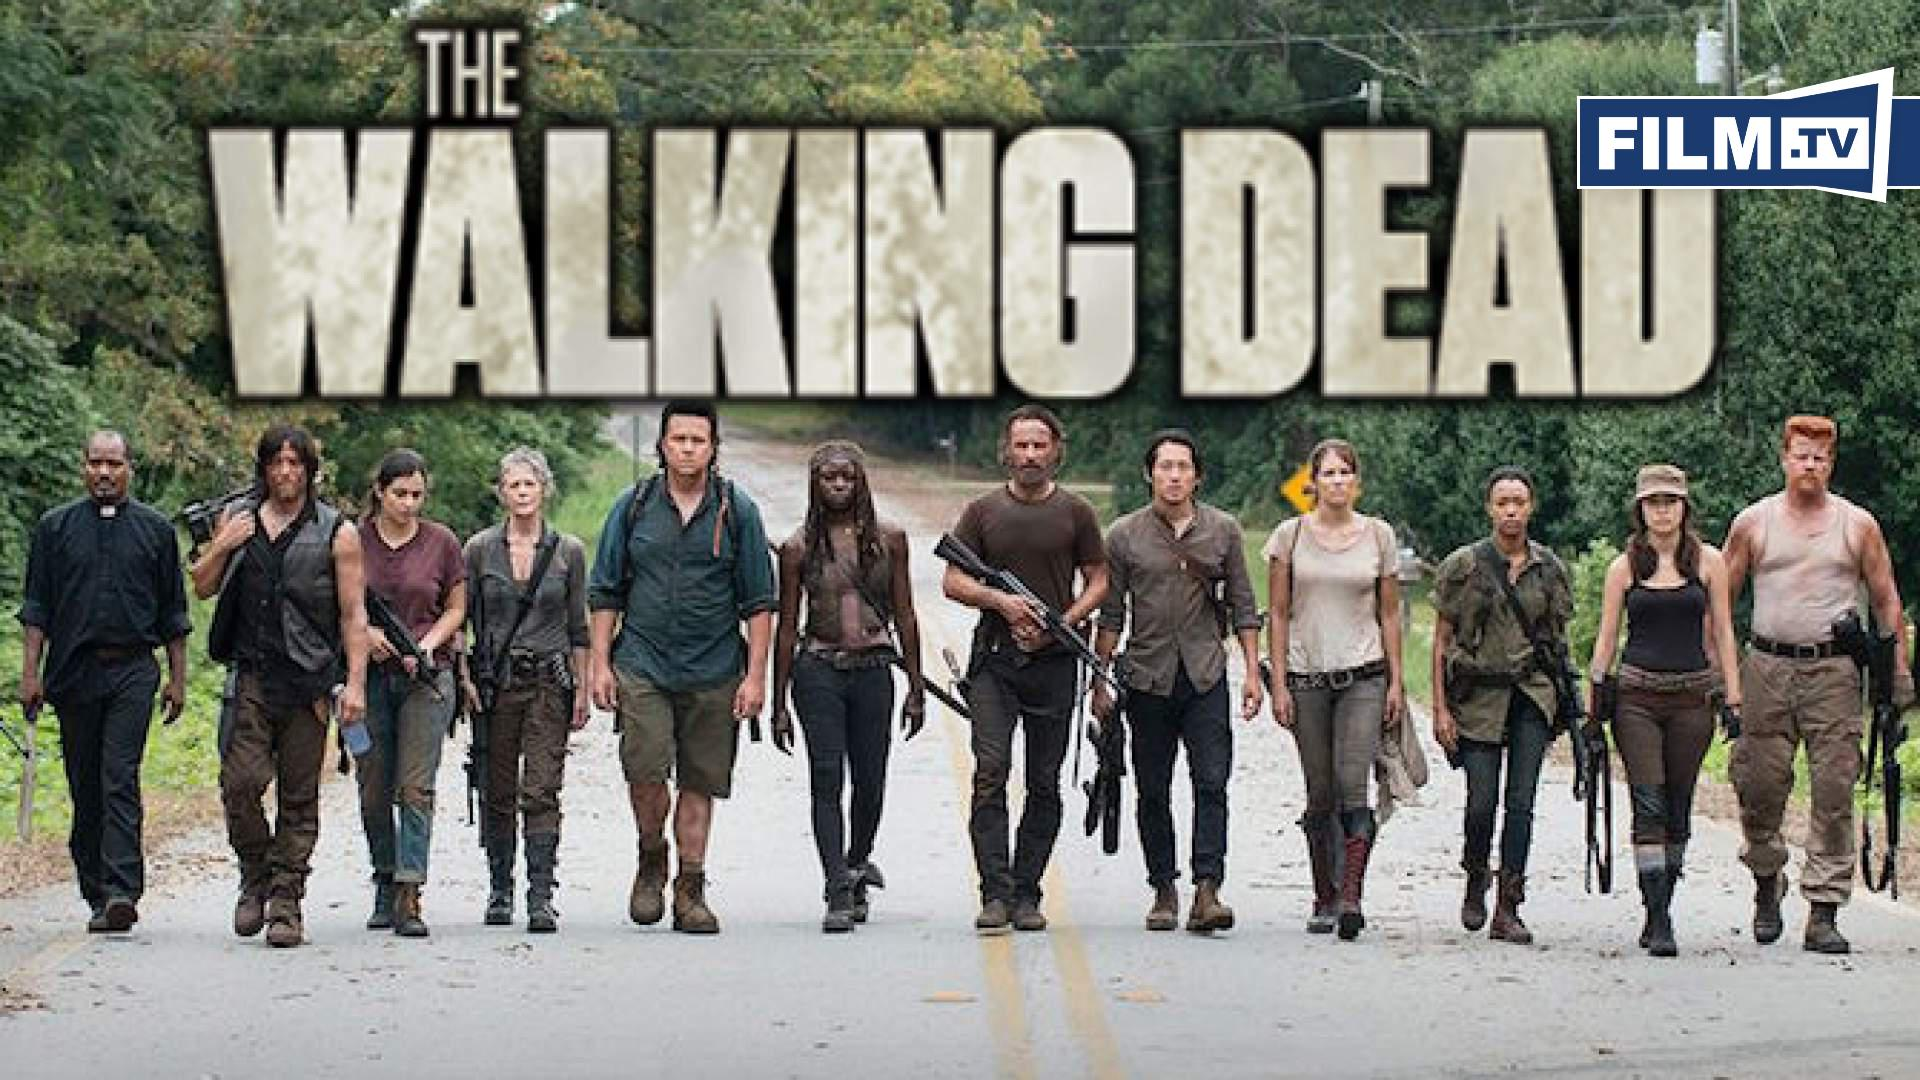 an analysis of the character in the movie dead man walking A list of all the characters in dead man walking the dead man walking  characters covered include: sister helen prejean, frank c blackburn, major  kendall.